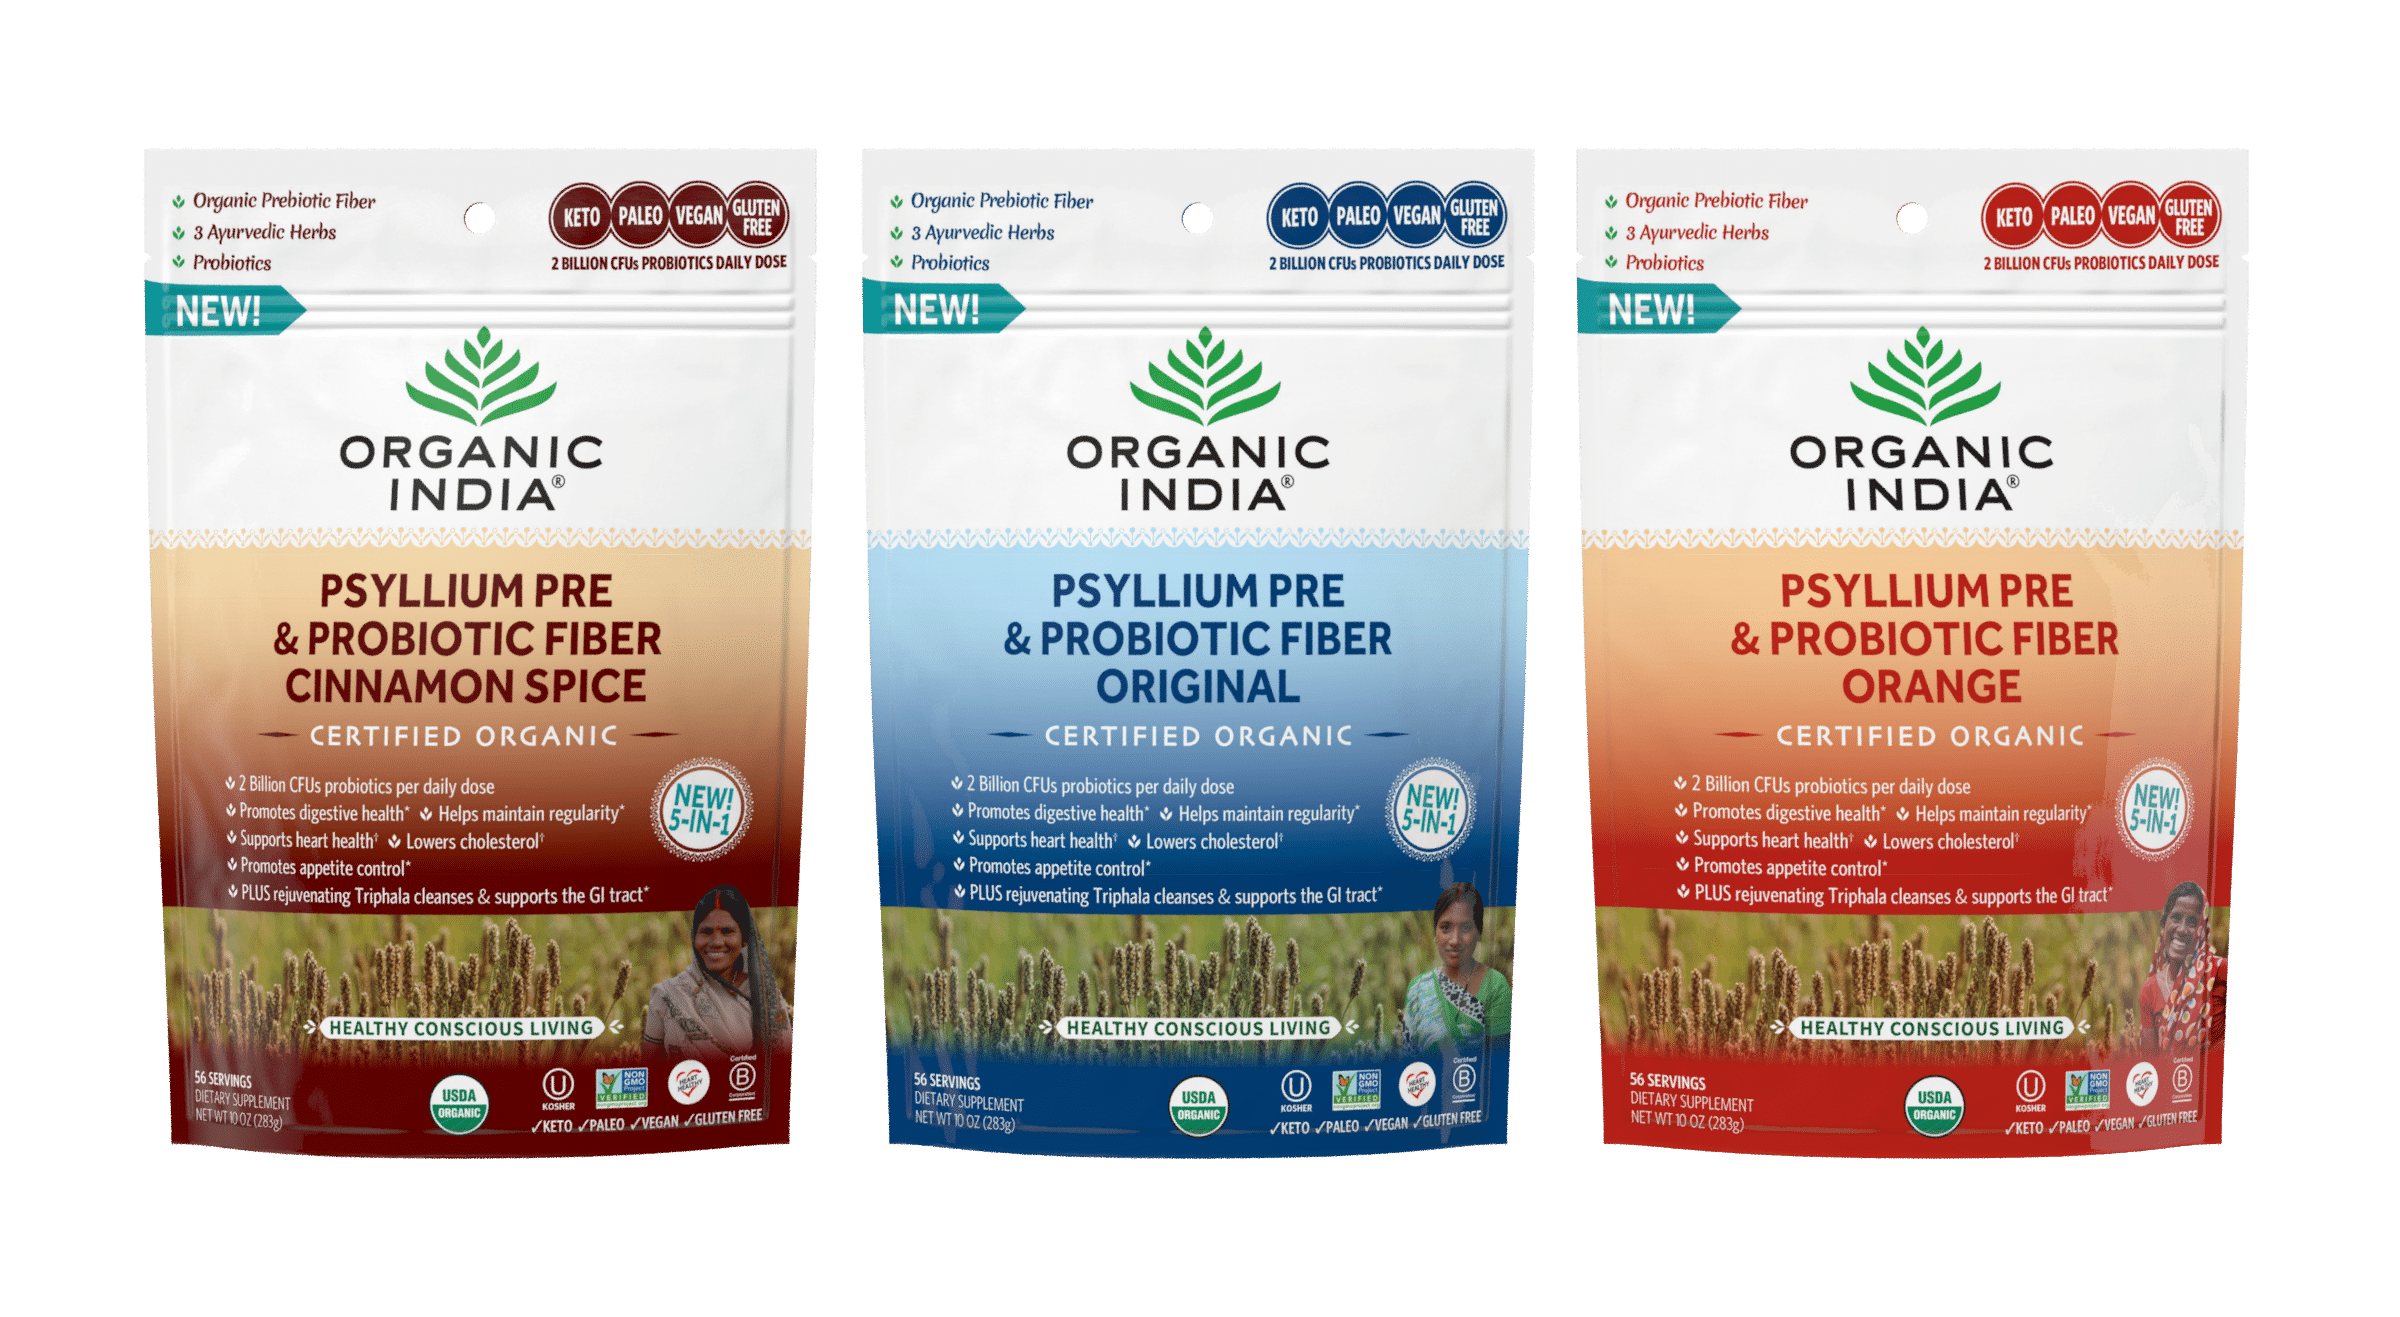 ORGANIC INDIA Launches Psyllium Pre & Probiotic Fiber